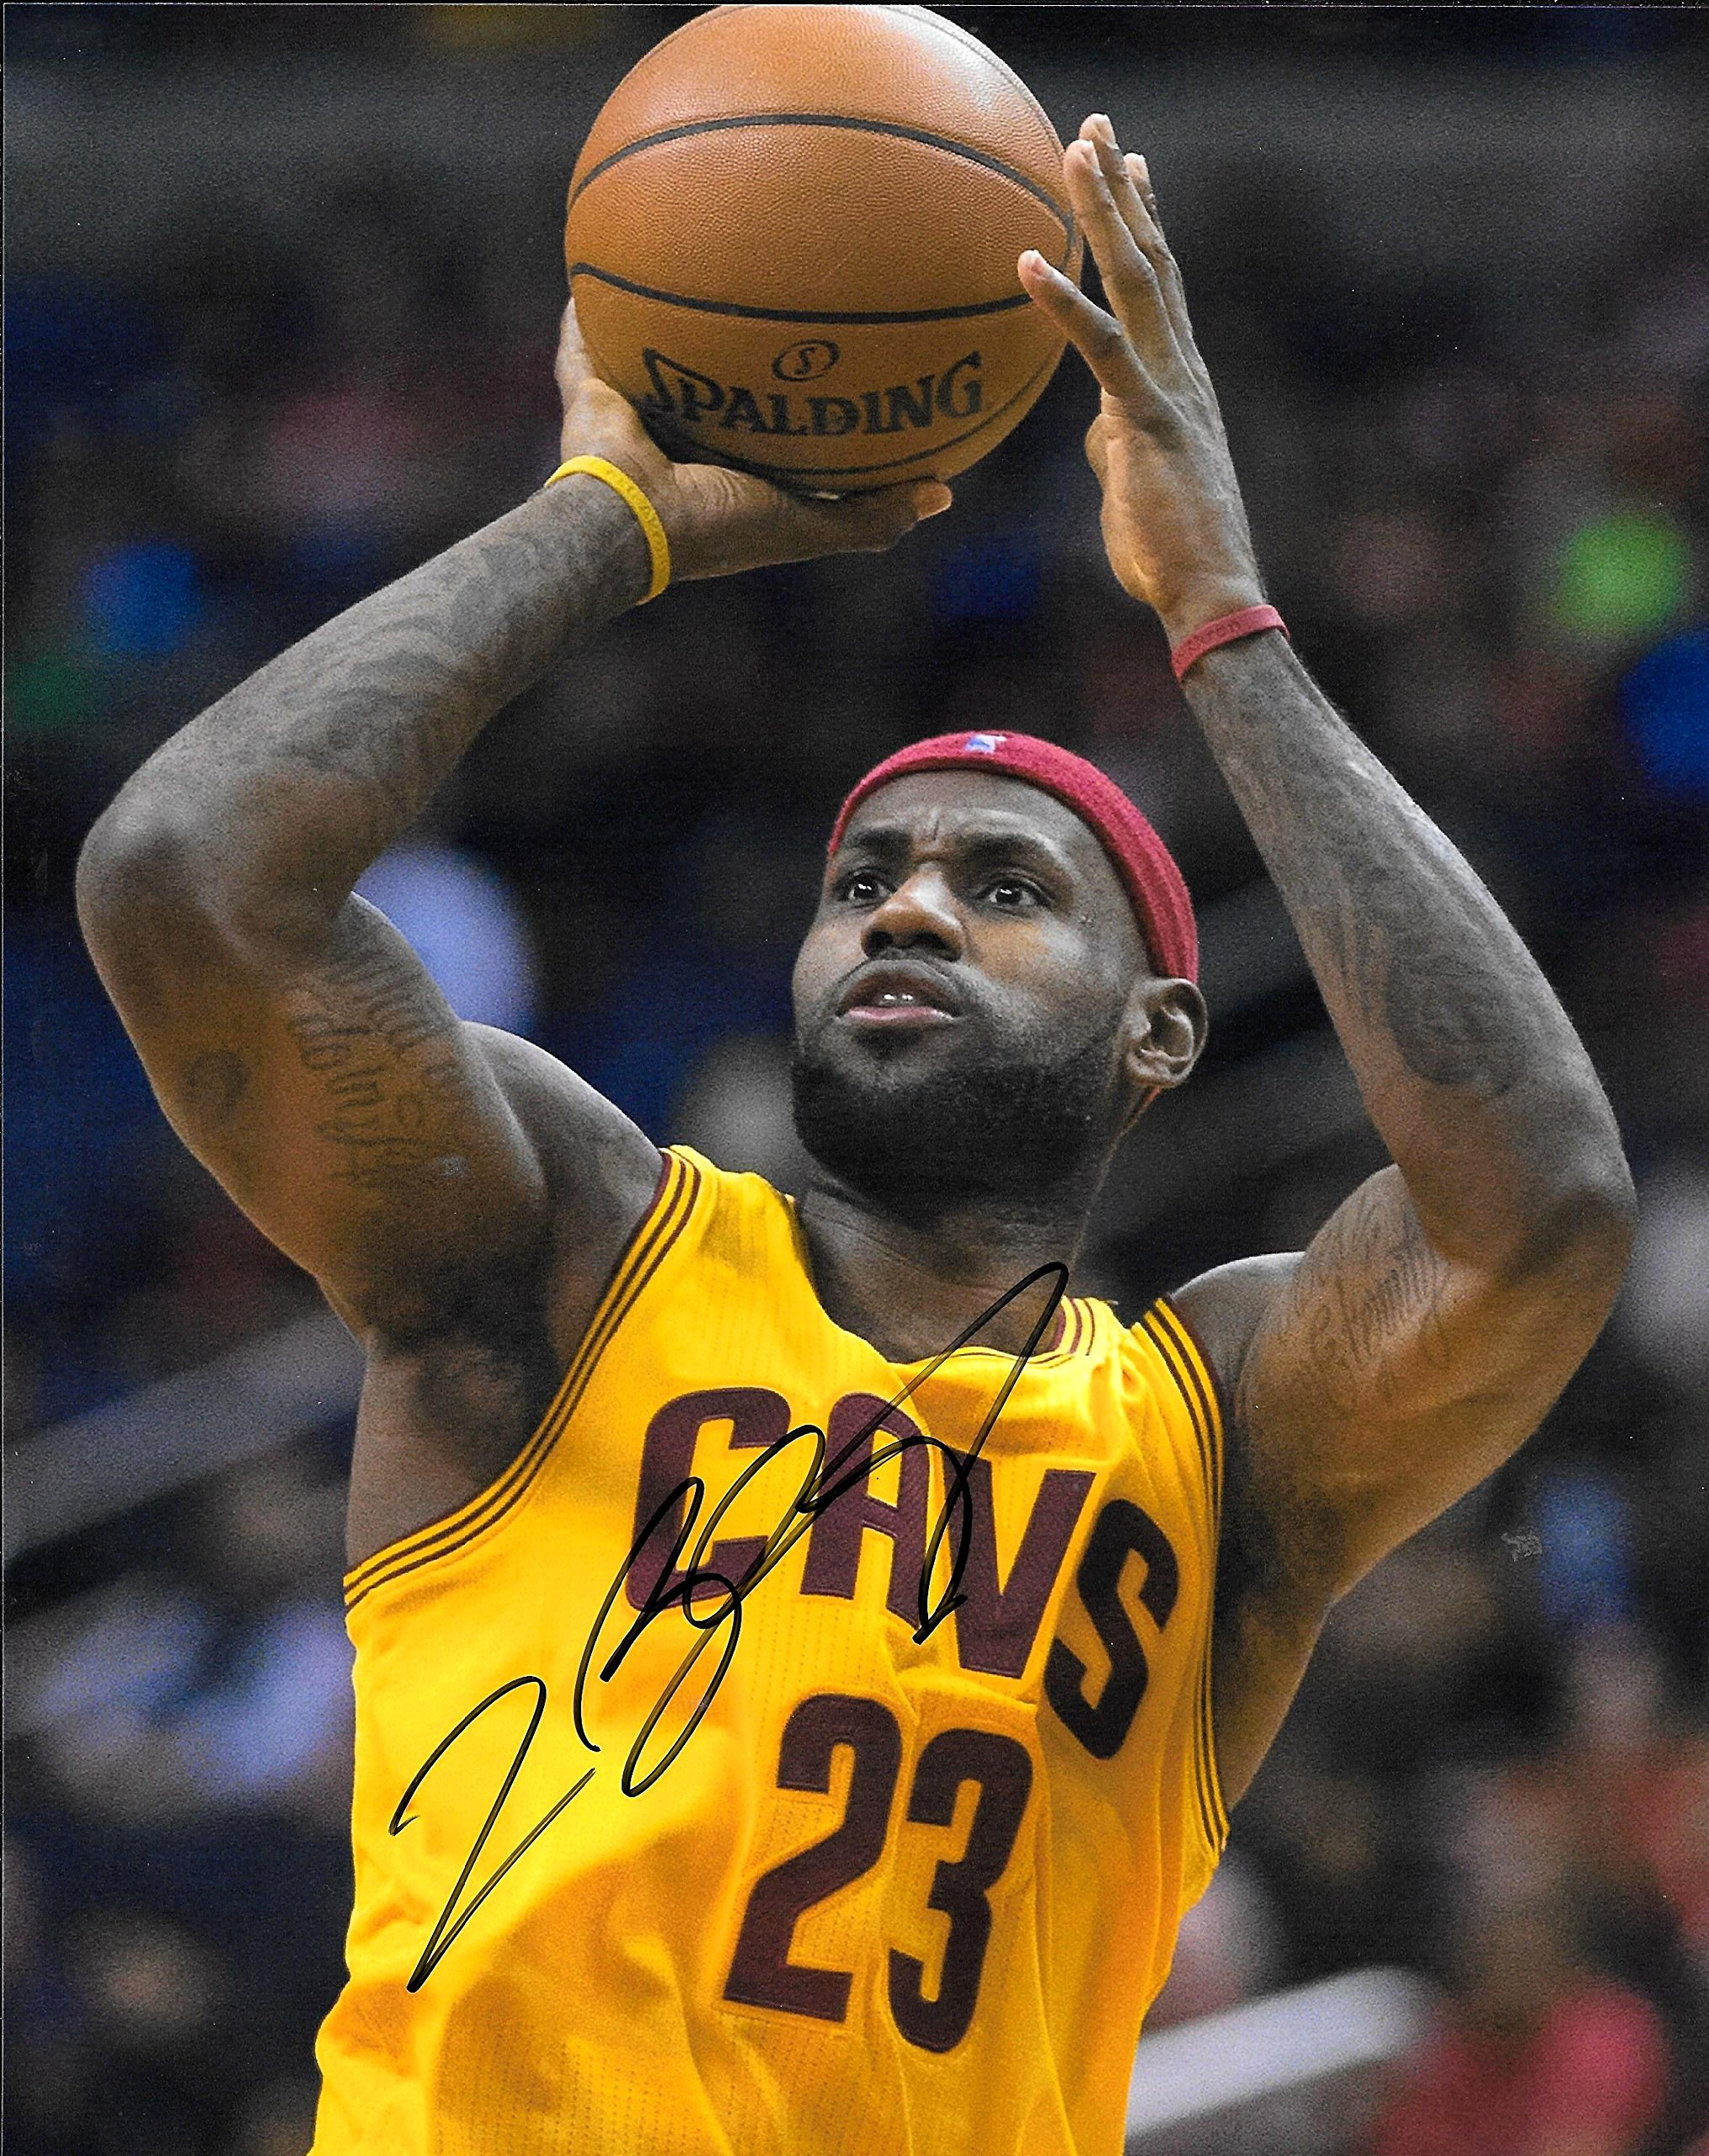 Lebron James Cleveland Cavaliers Autographed Signed 8 x 10 Photo COA NM/MT MT Condition!